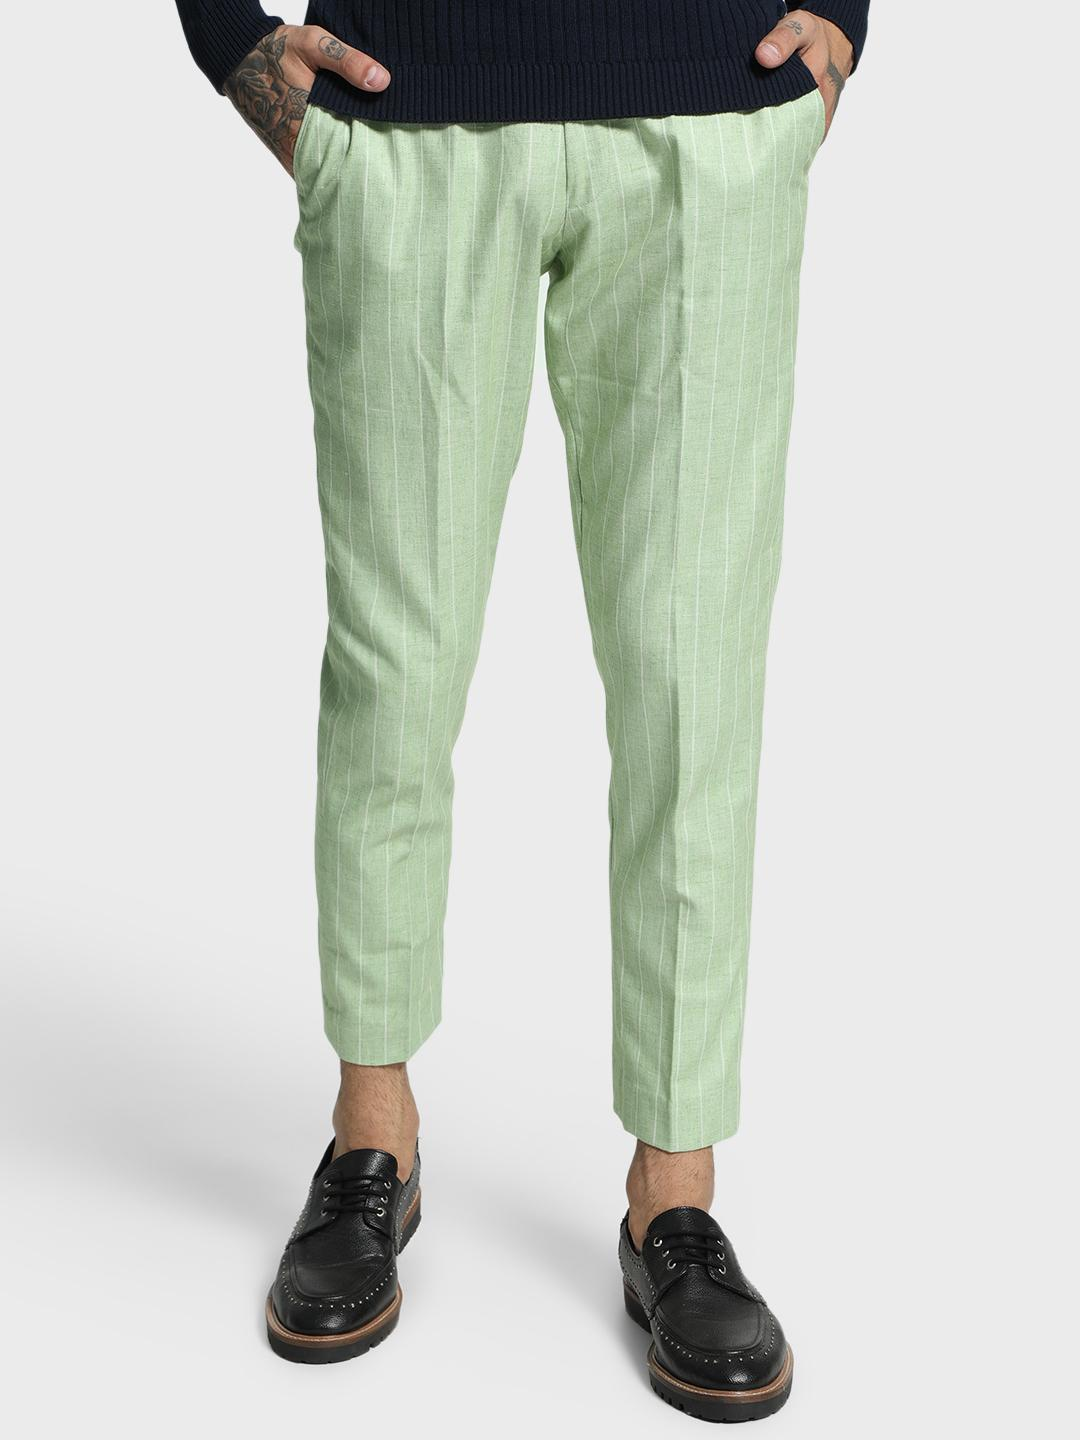 Mr Button Green Pinstripe Woven Cropped Slim Trousers 1